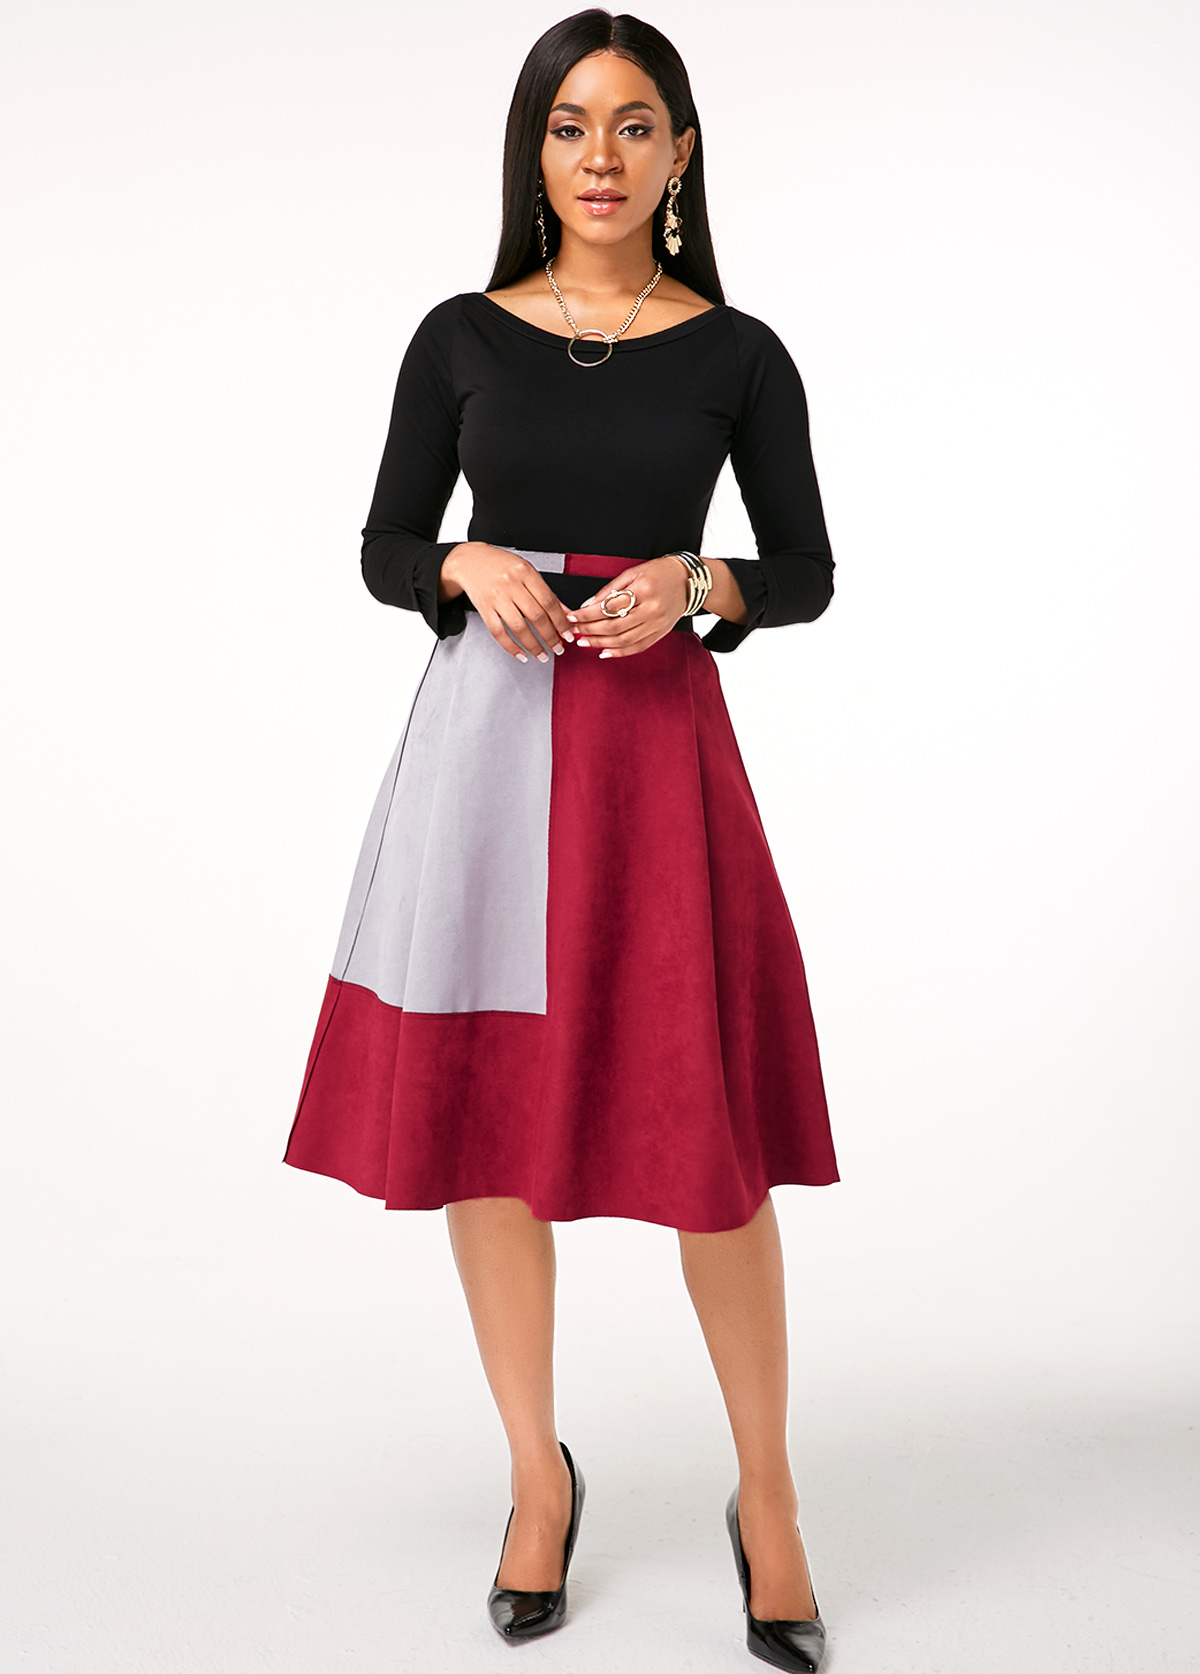 Round Neck Long Sleeve Top and Contrast Skirt